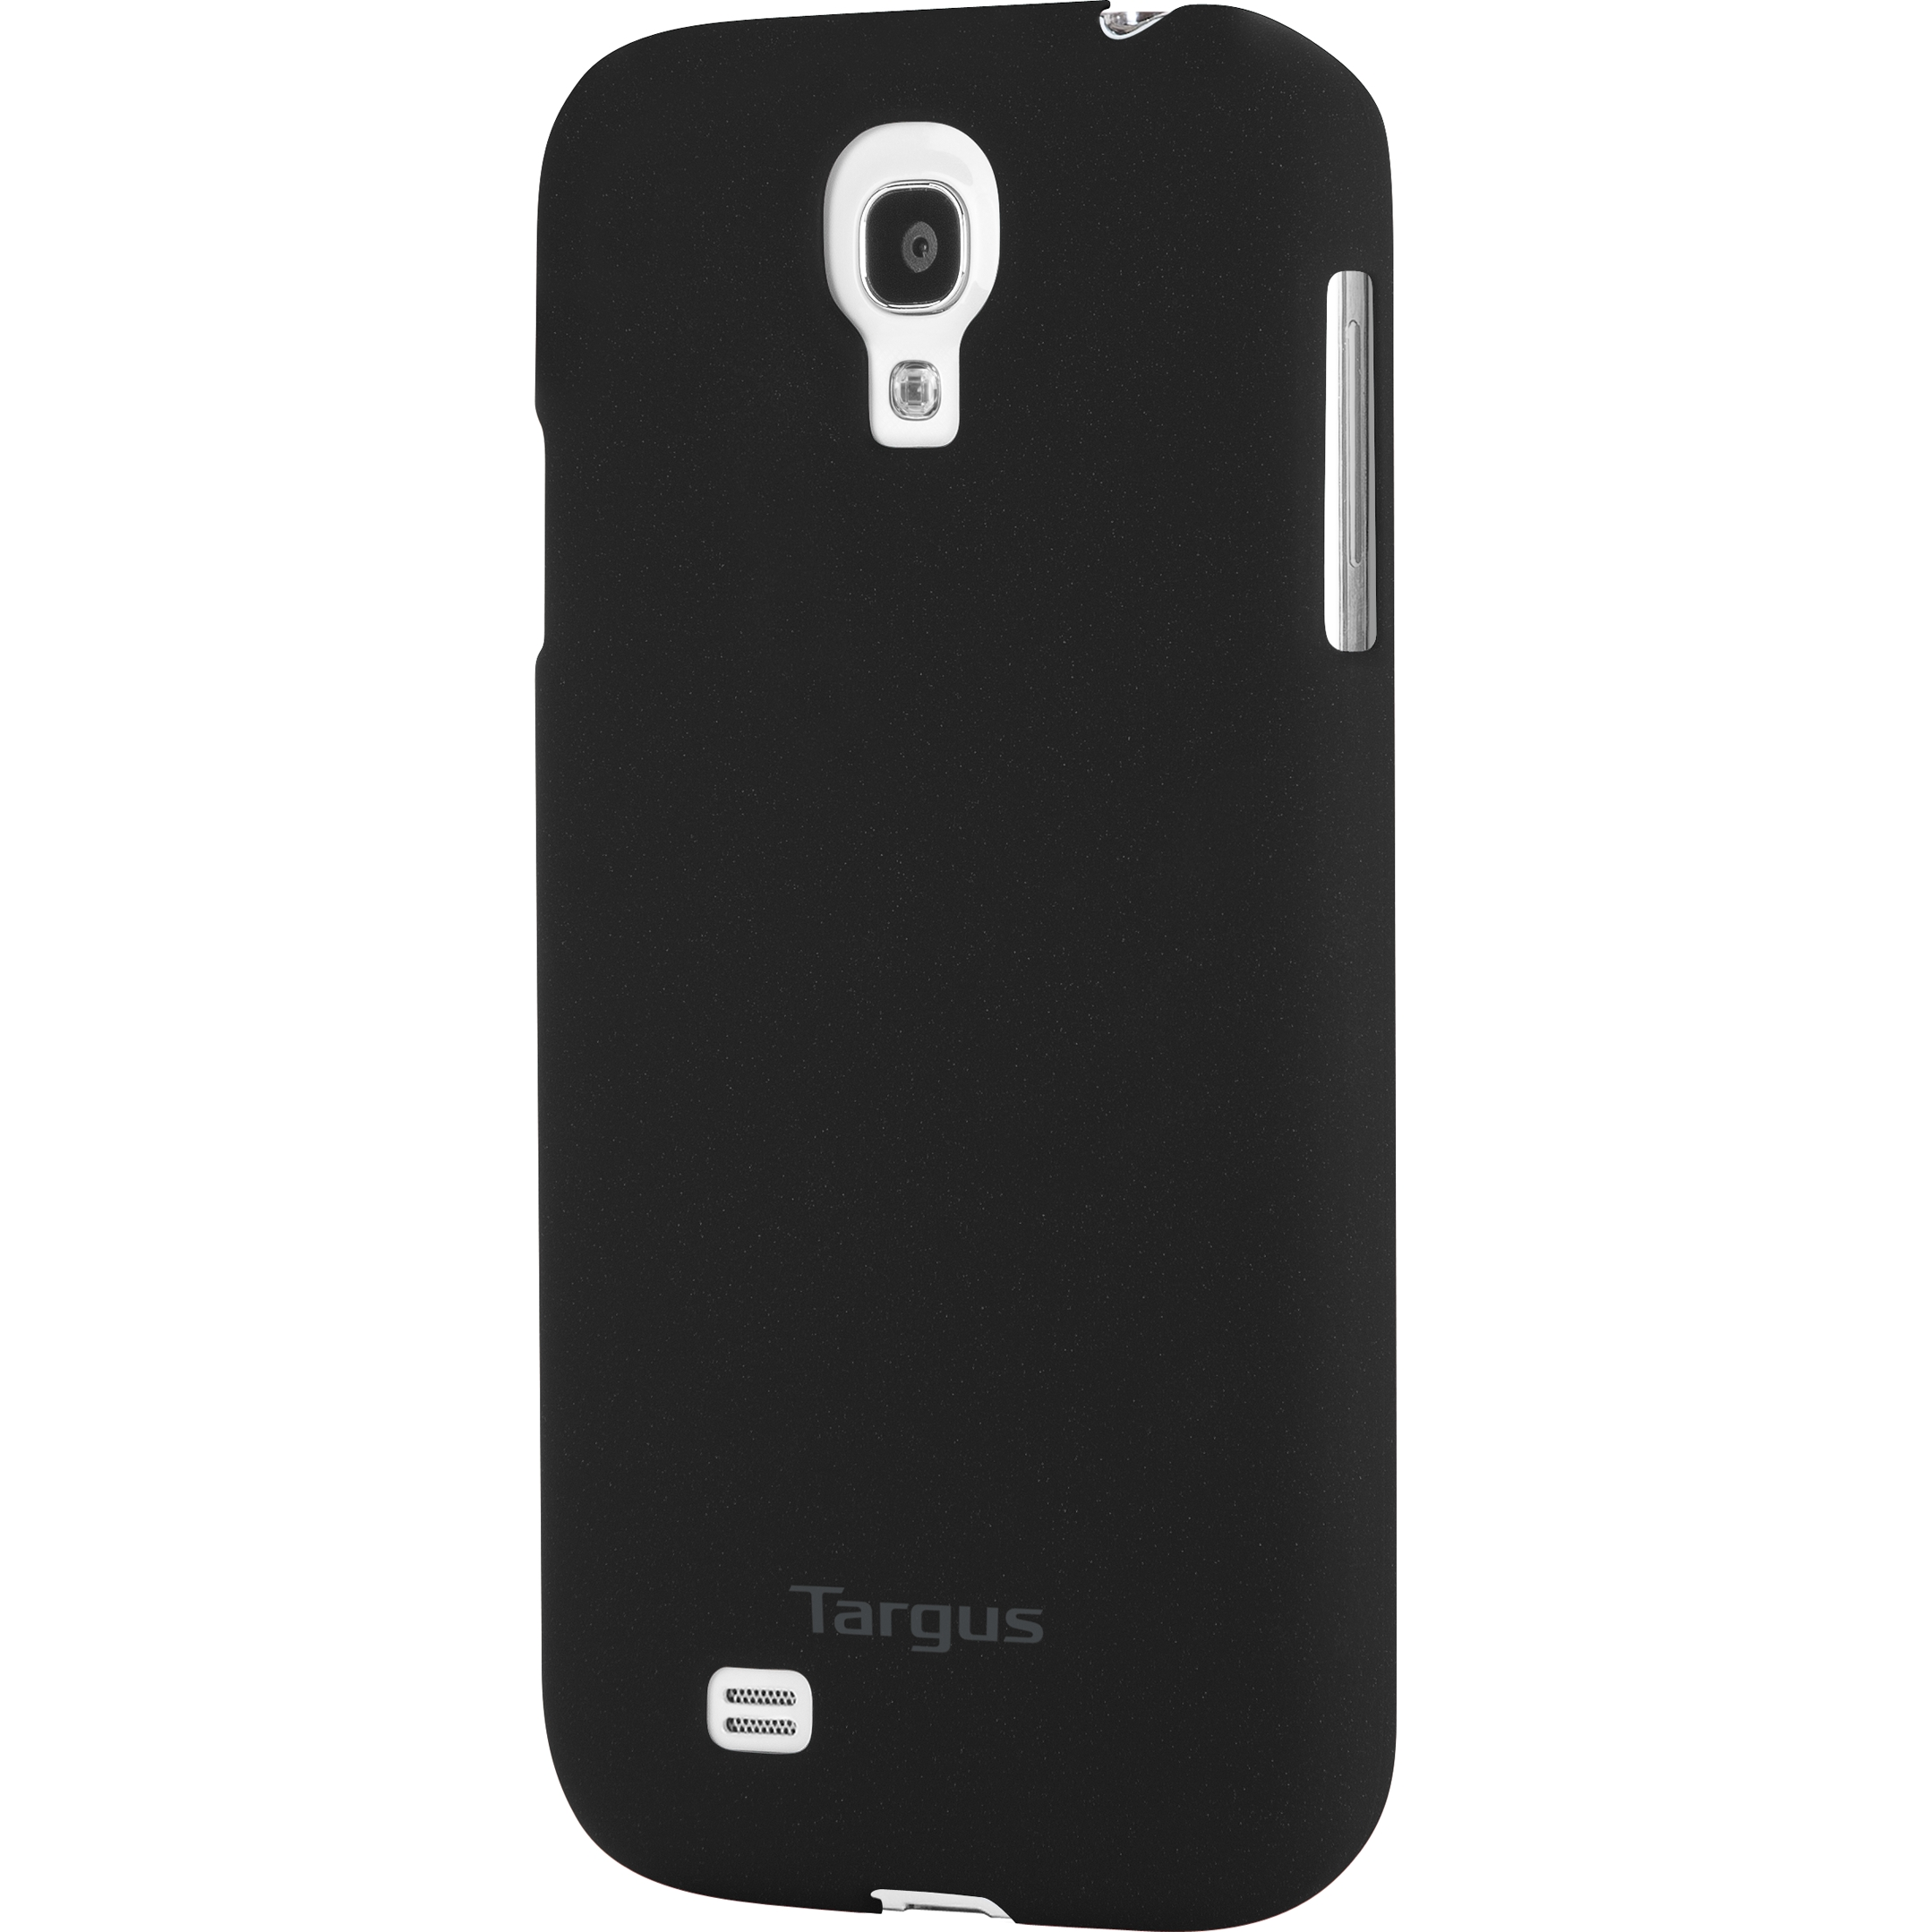 samsung galaxy s4 phone black. picture of snap-on shell for samsung galaxy s4 (black) phone black ,